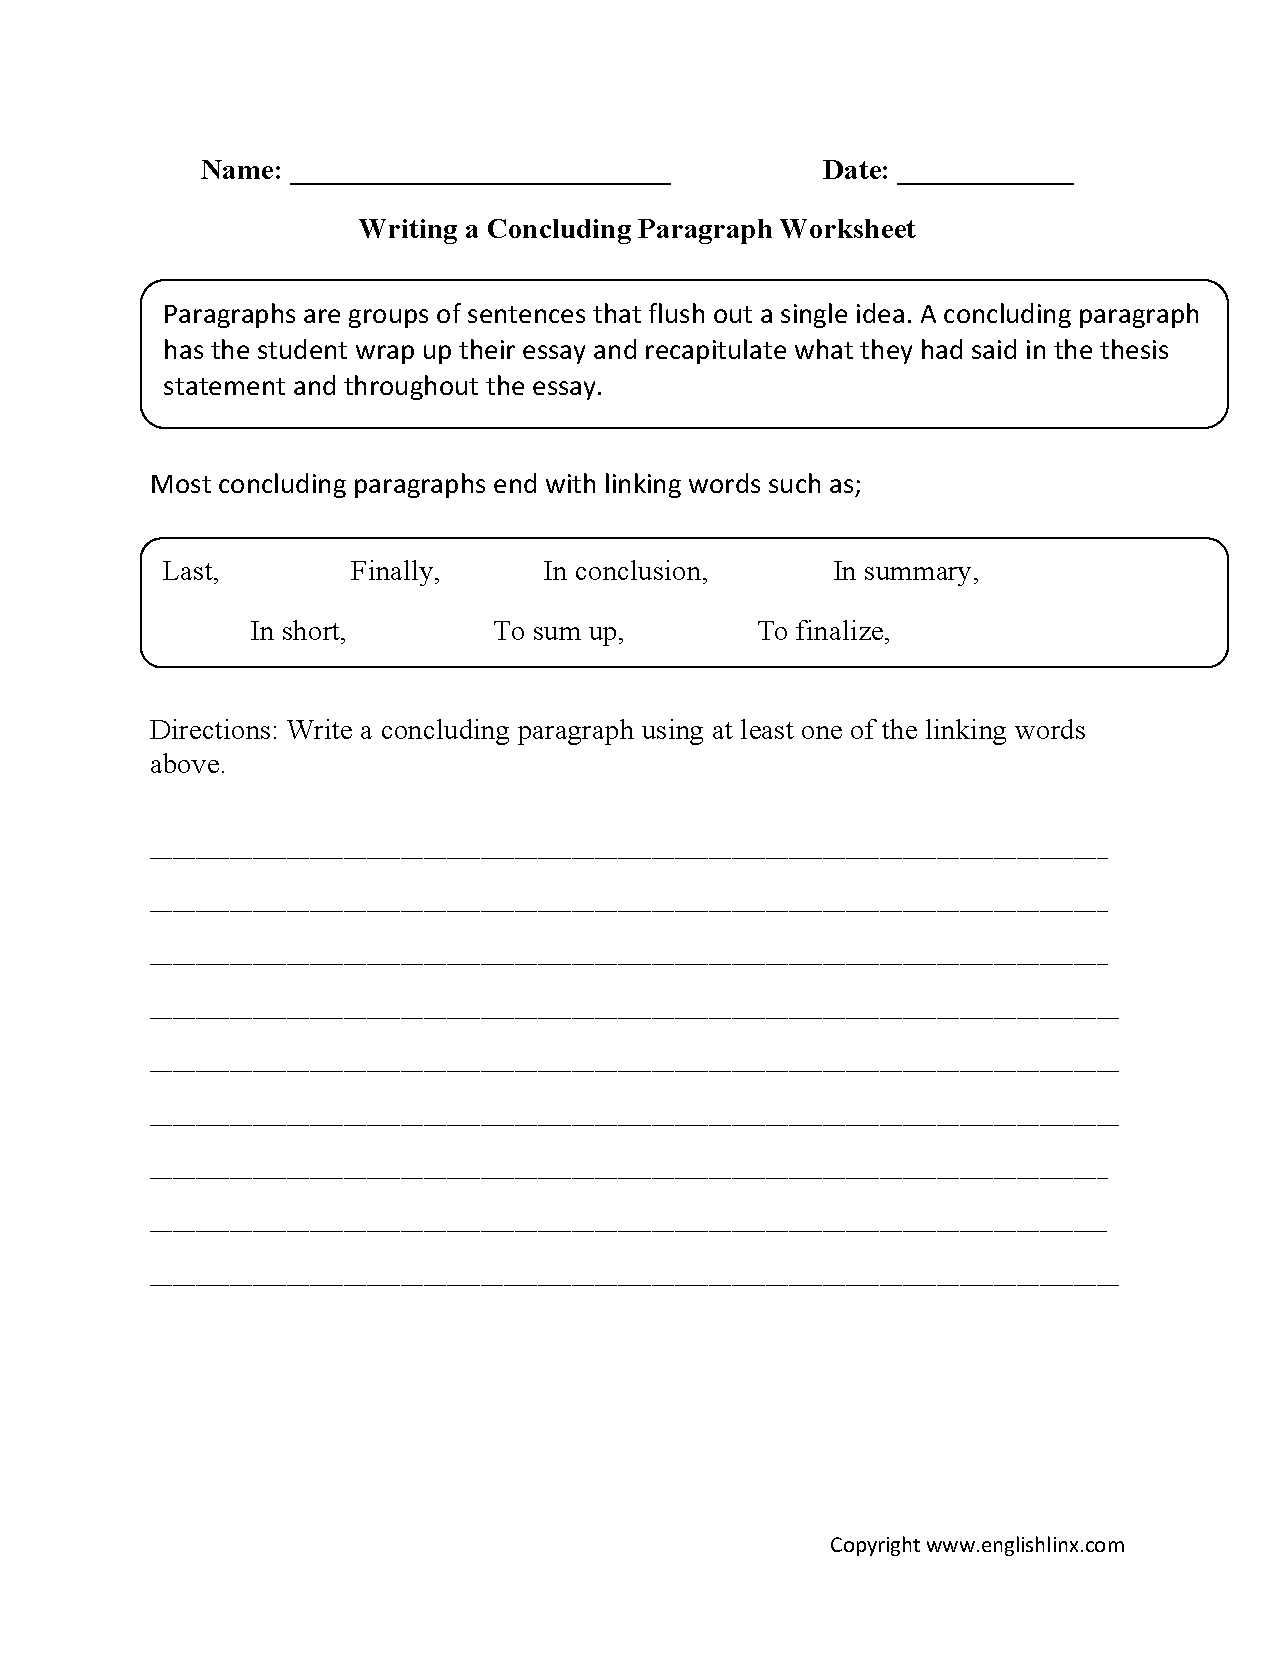 Custom writing essay practice exercises